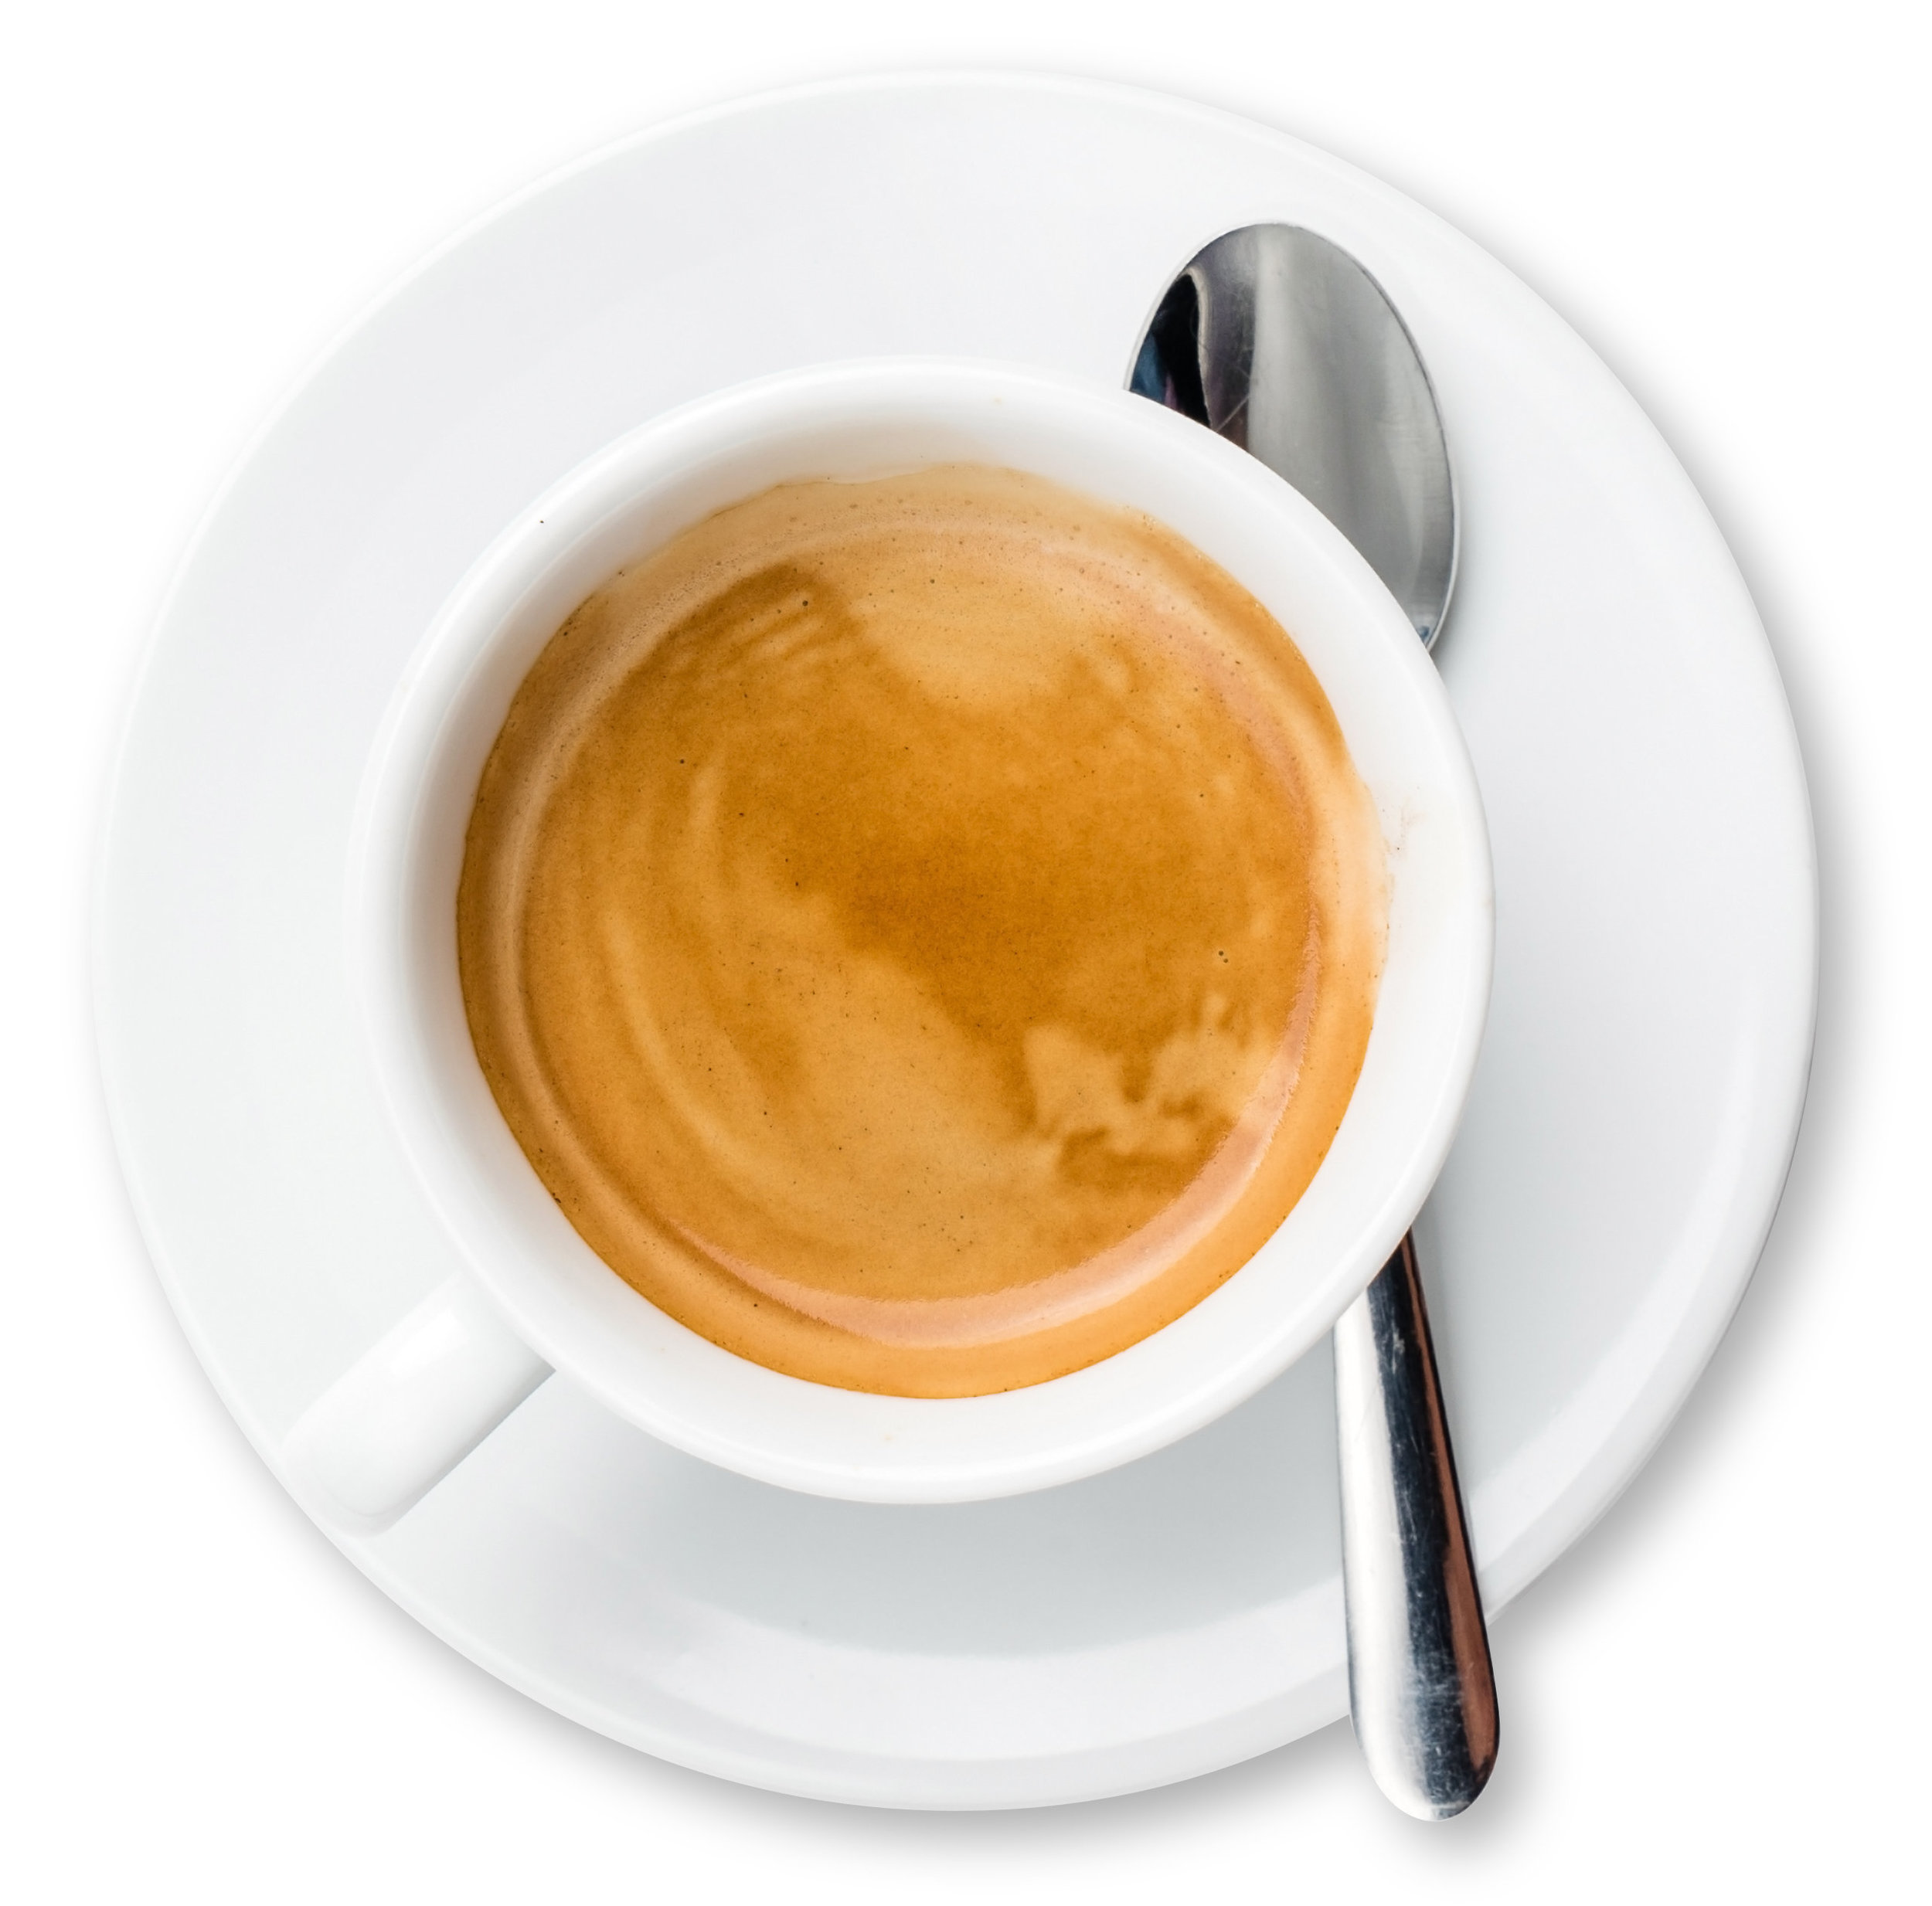 - We design with passion and LOTS of coffee